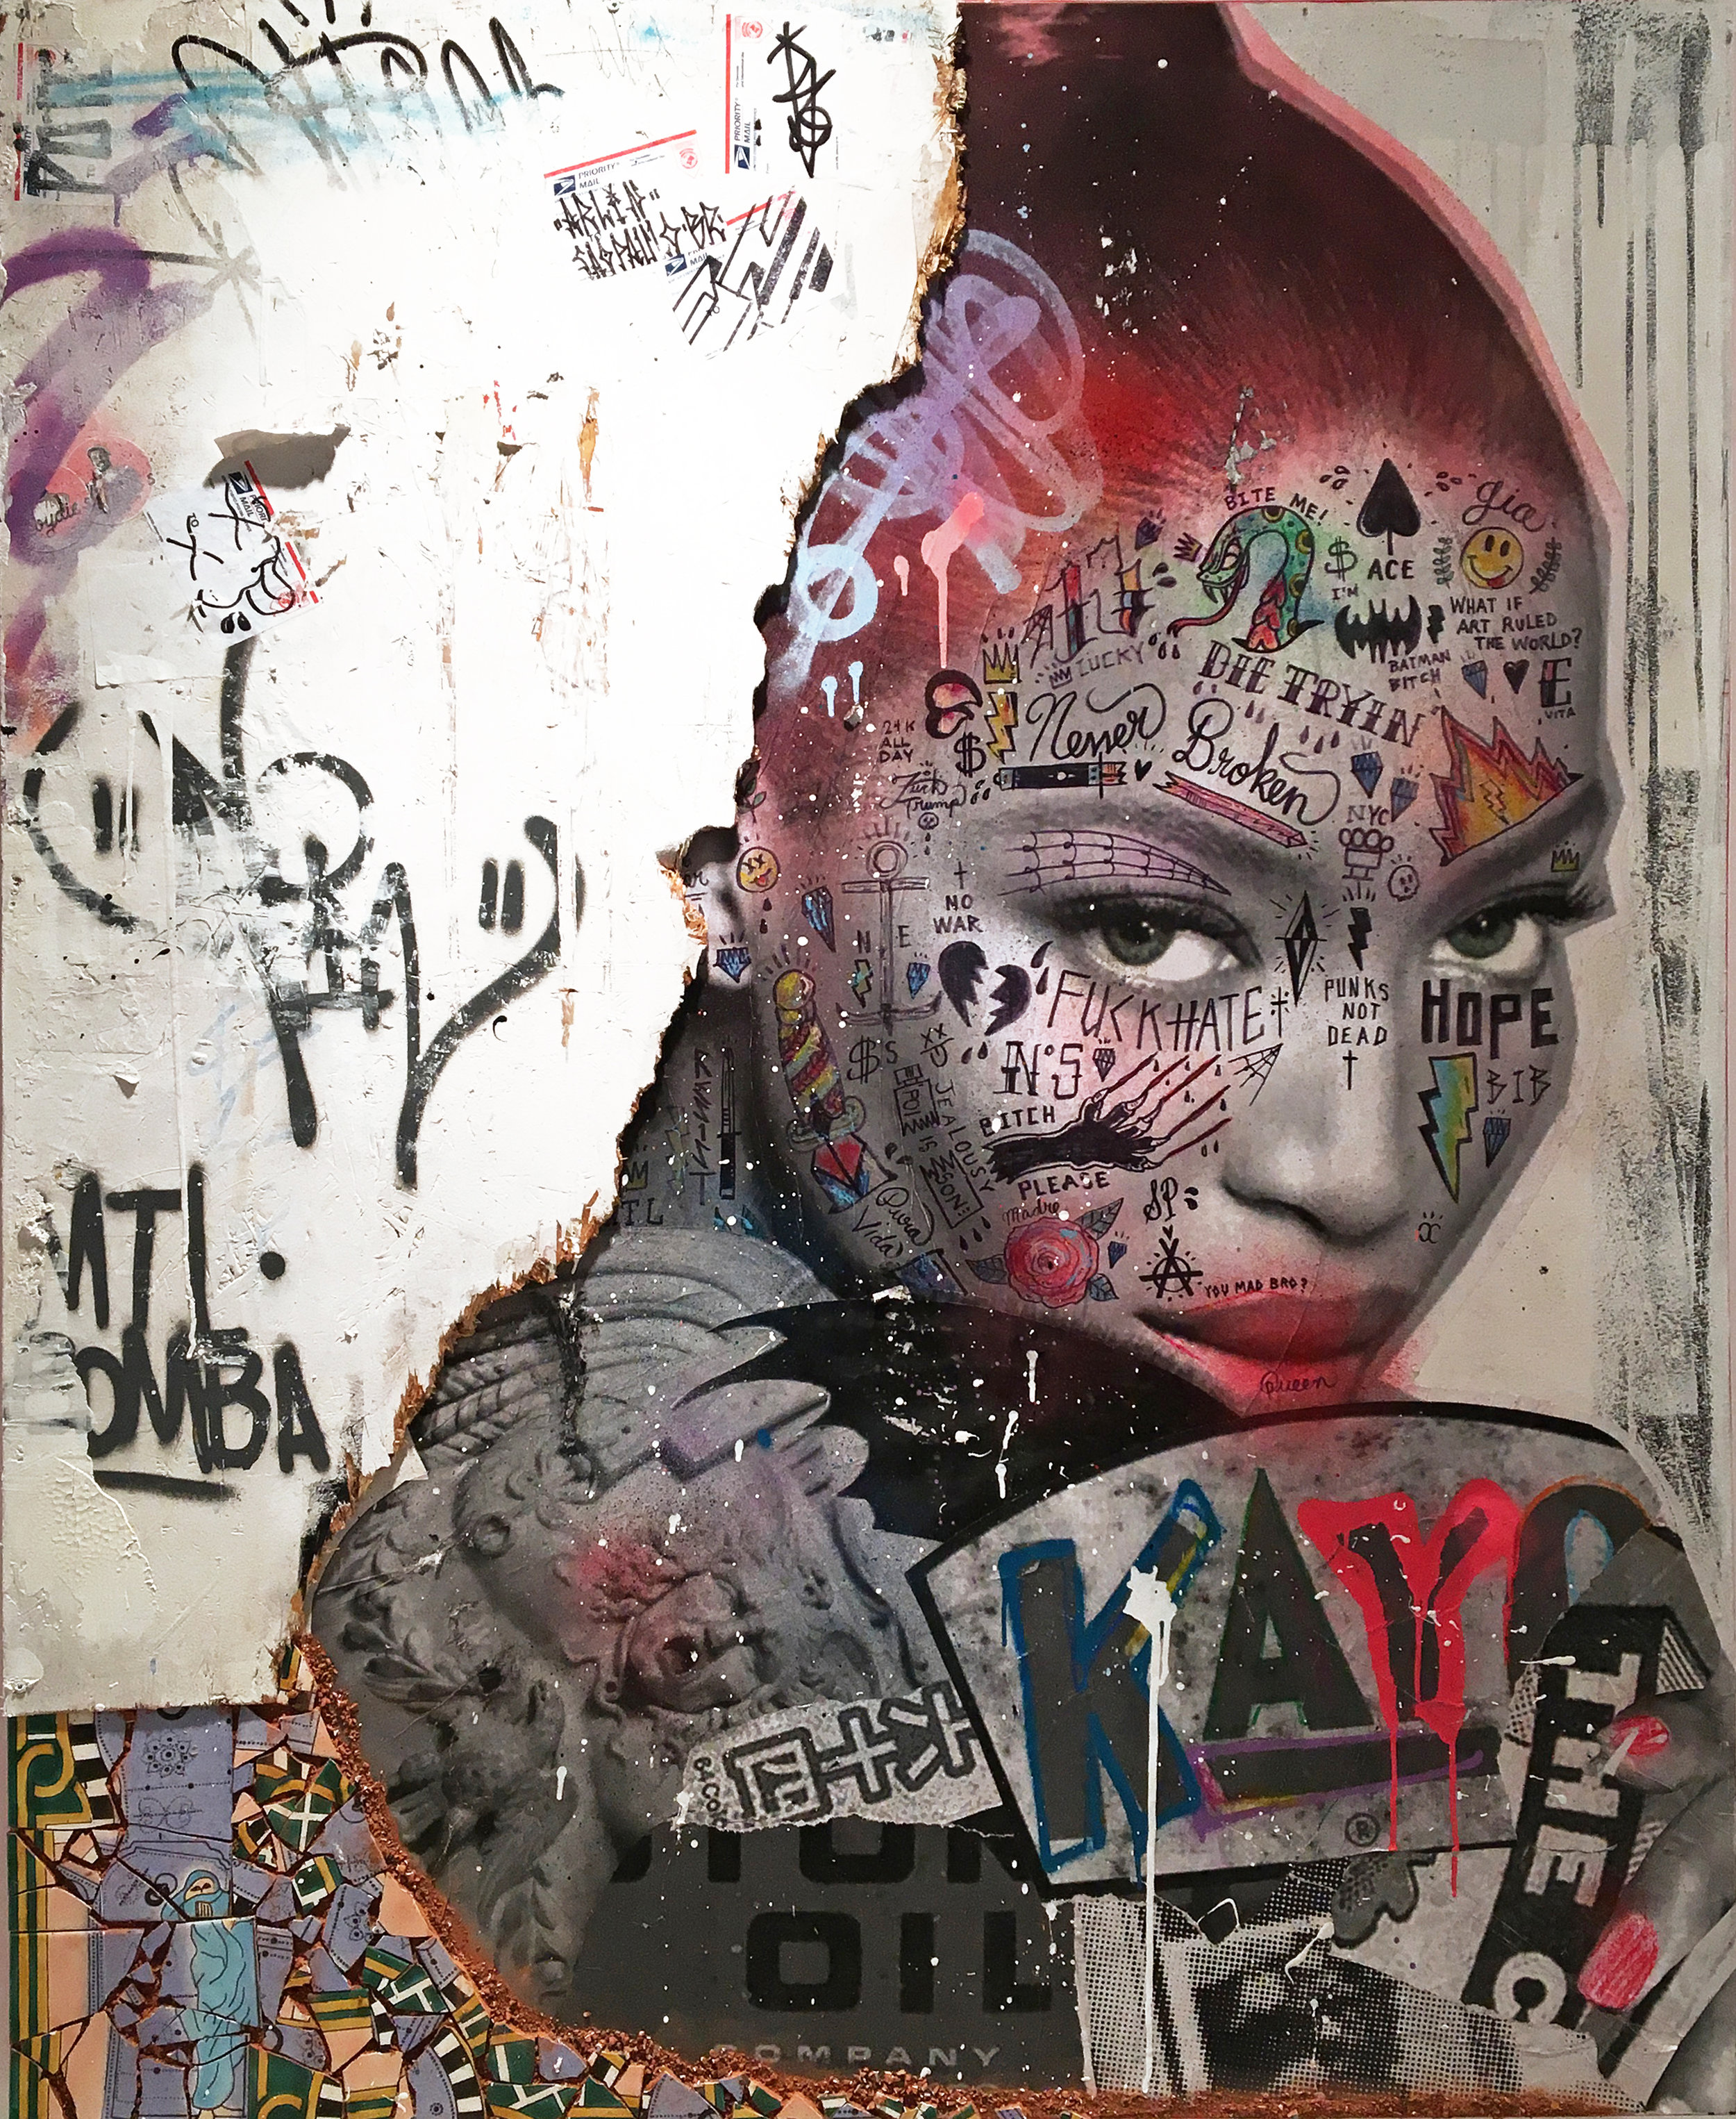 - STIKKI PEACHES | FEARLESS (NAOMI CAMPBELL)| Mixed media on canvas with reclaimed wood & Tunisian hand painted tiles152 x 122 cm | 60 x 48 in2018